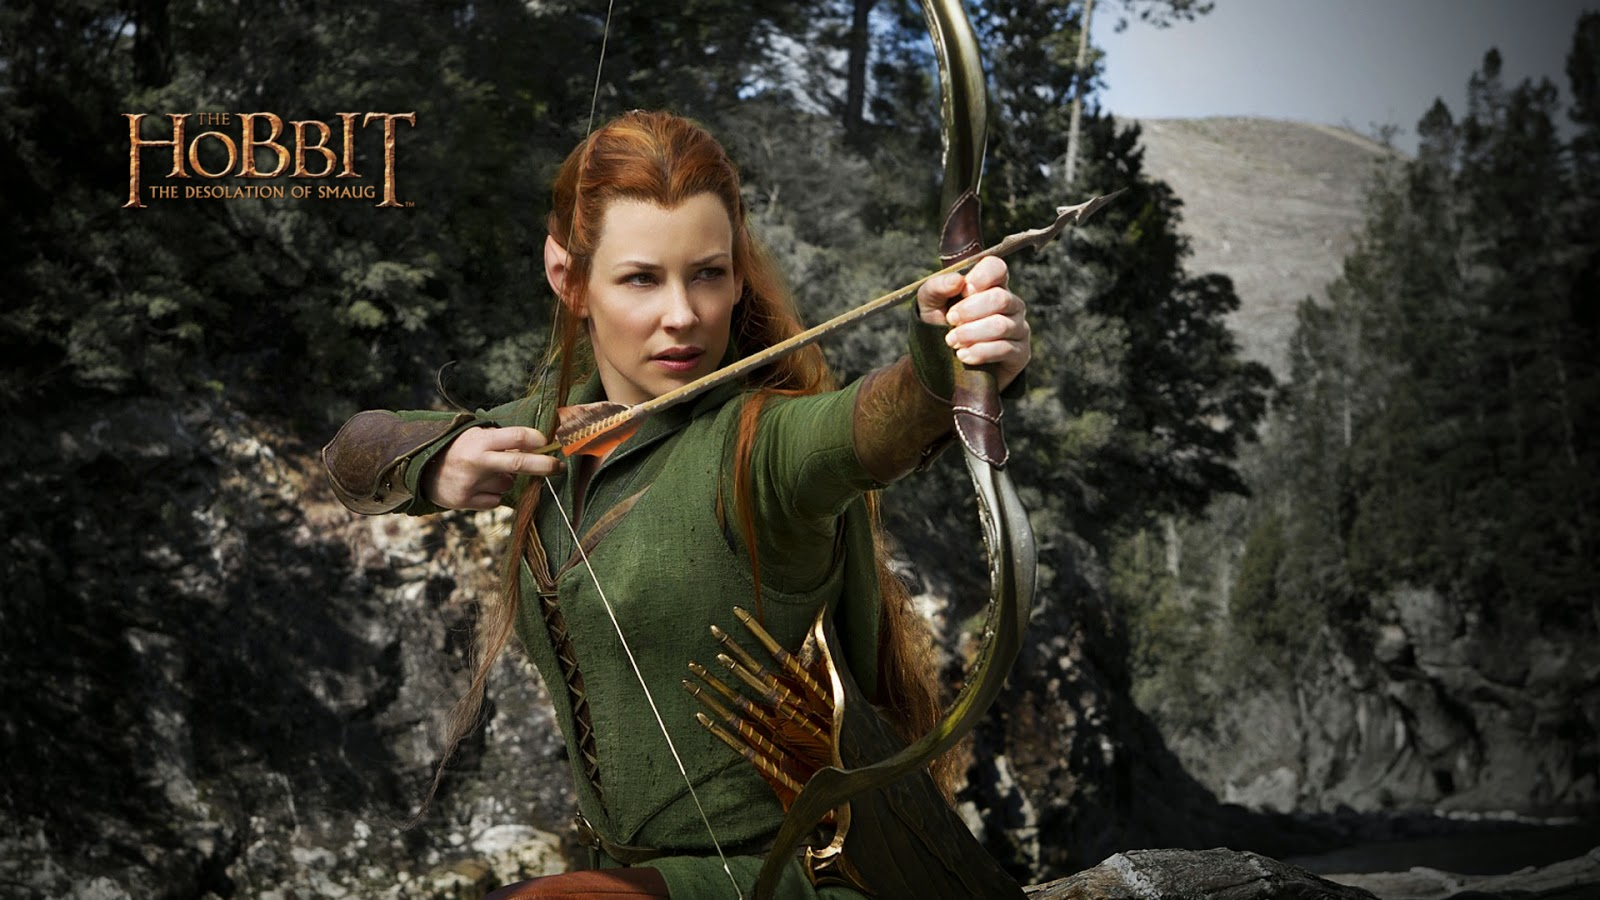 Evangeline Lilly as Tauriel in Hobbit HD Wallpaper iHD  - evangeline lilly as tauriel in hobbit wallpapers